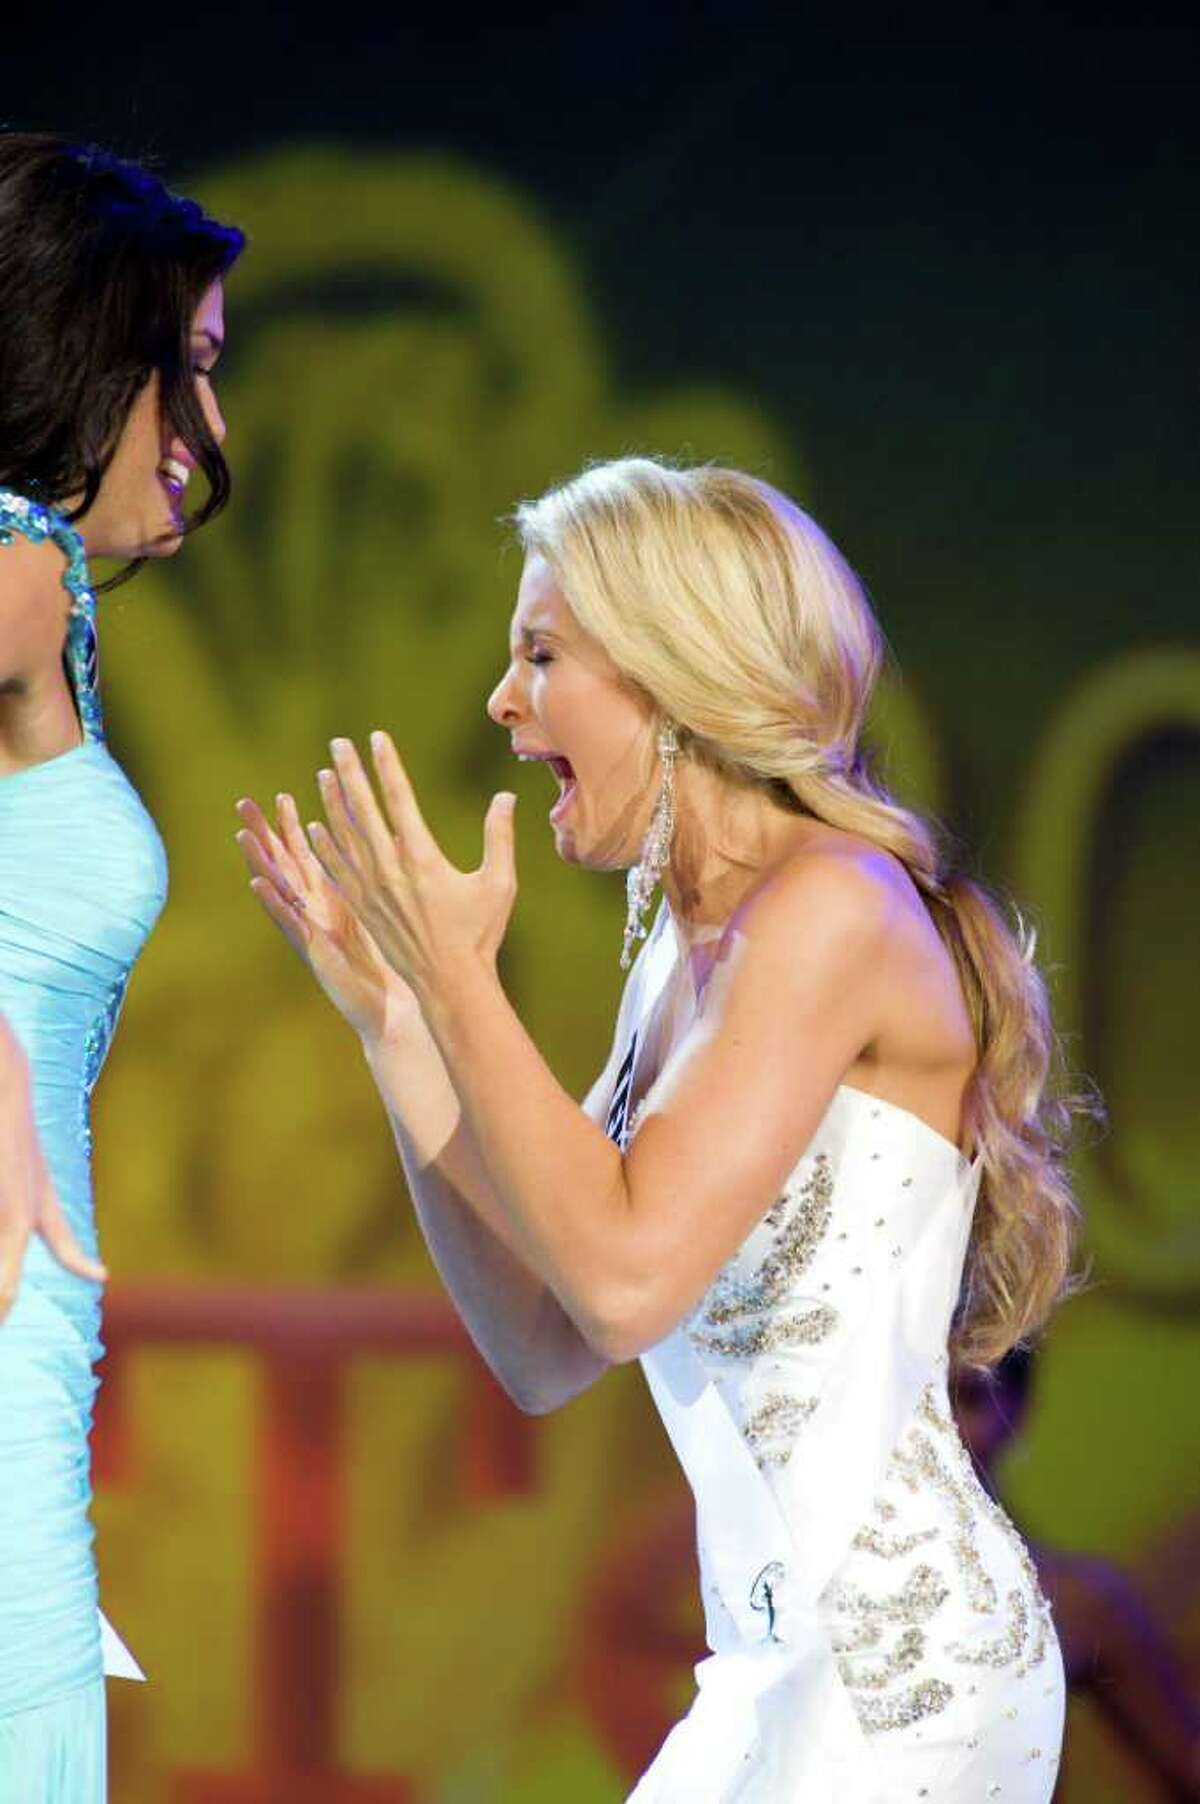 Miss Texas Teen USA 2011, Danielle Doty, reacts as she is named Miss Teen USA 2011 at Atlantis, Paradise Island and Resort in The Bahamas on Saturday, July 16, 2011.